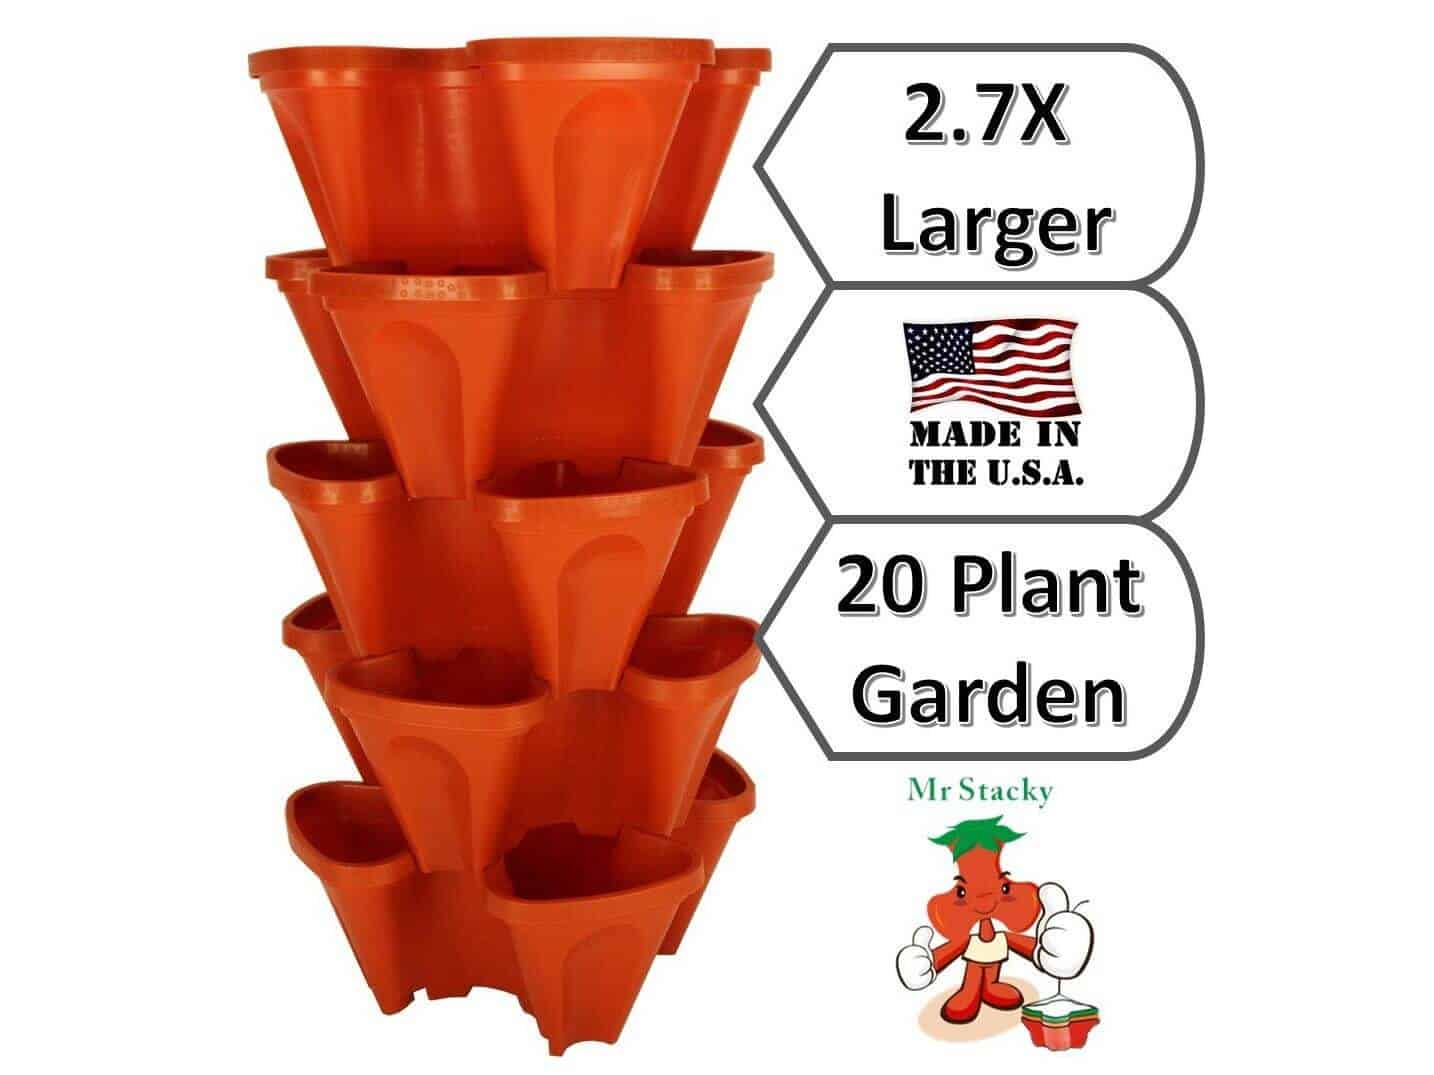 LARGE Vertical Gardening Stackable Planters by Mr. Stacky - Grow More Using Limited Space And Minimum Effort - Plant. Stack. Enjoy